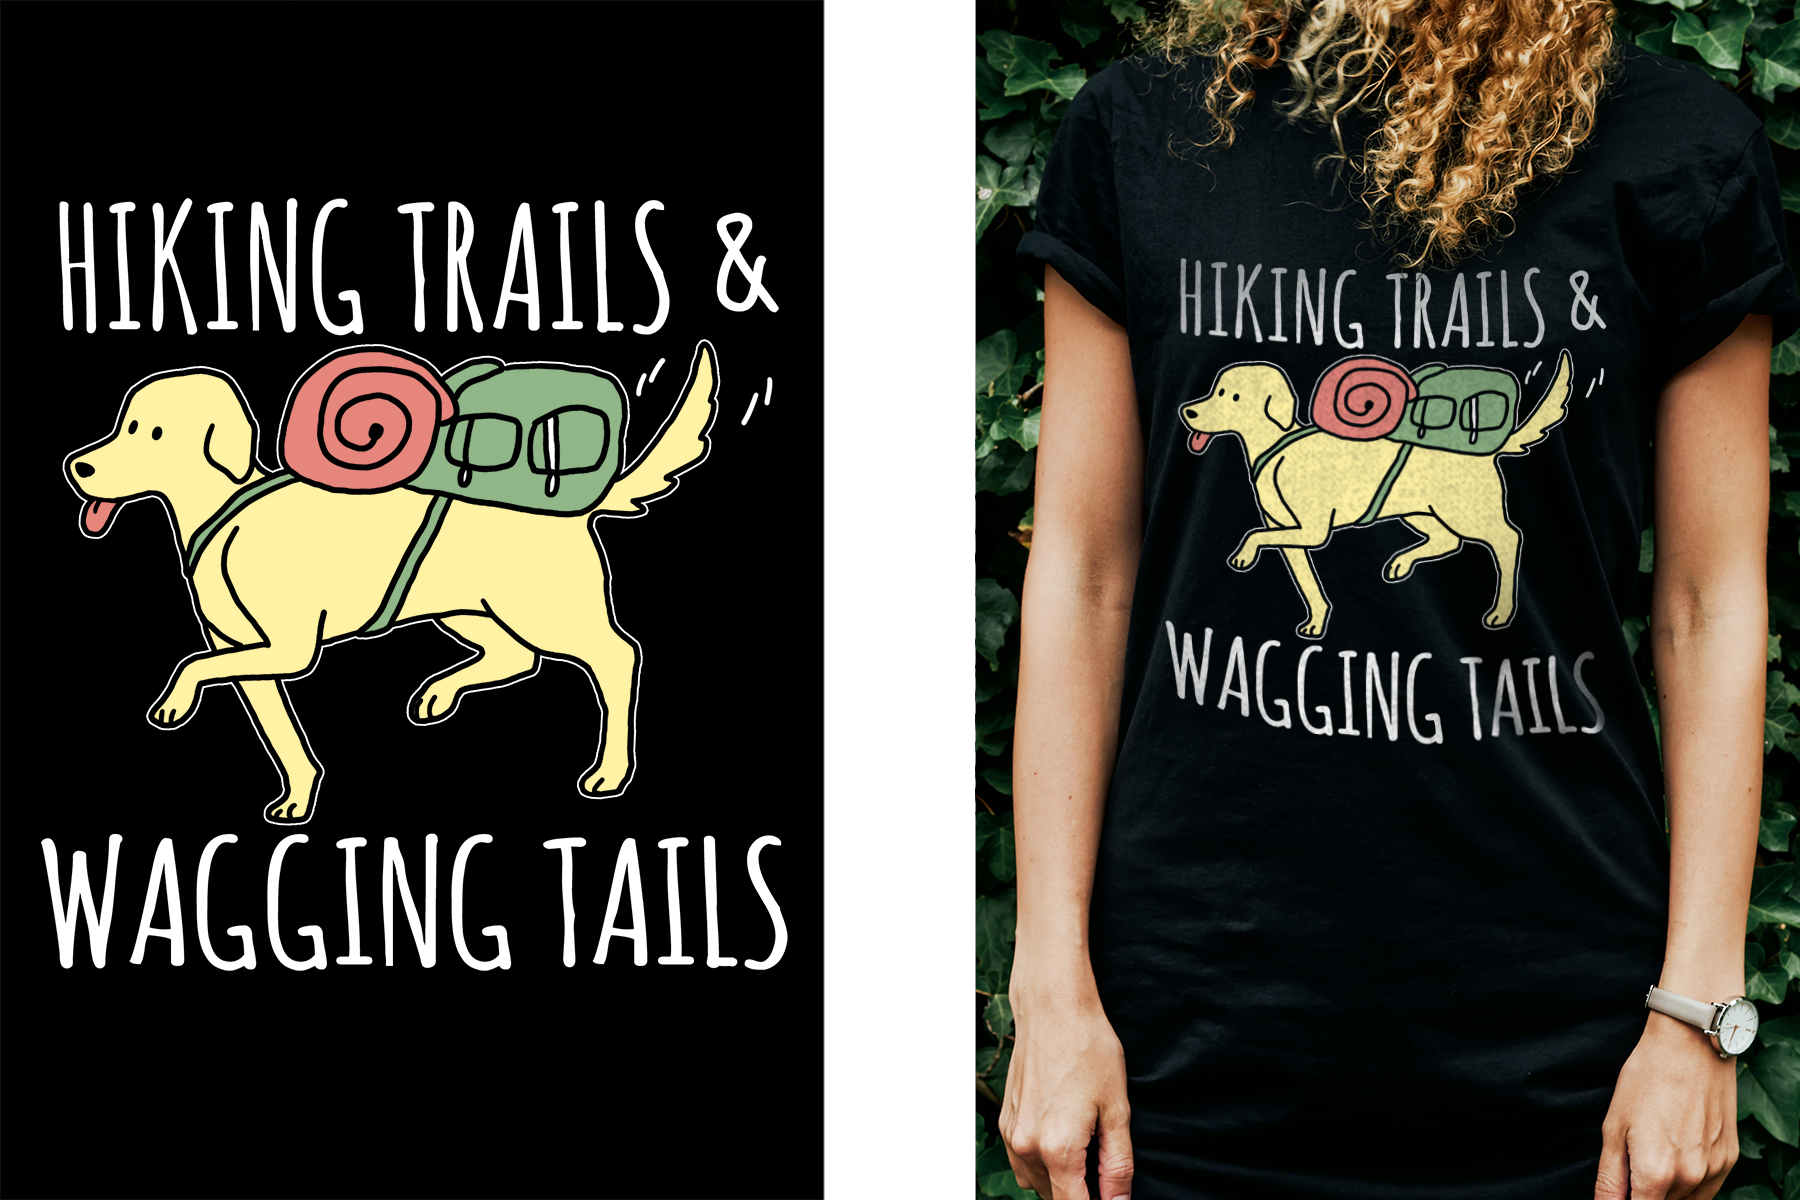 hiking trails wagging tails.jpg